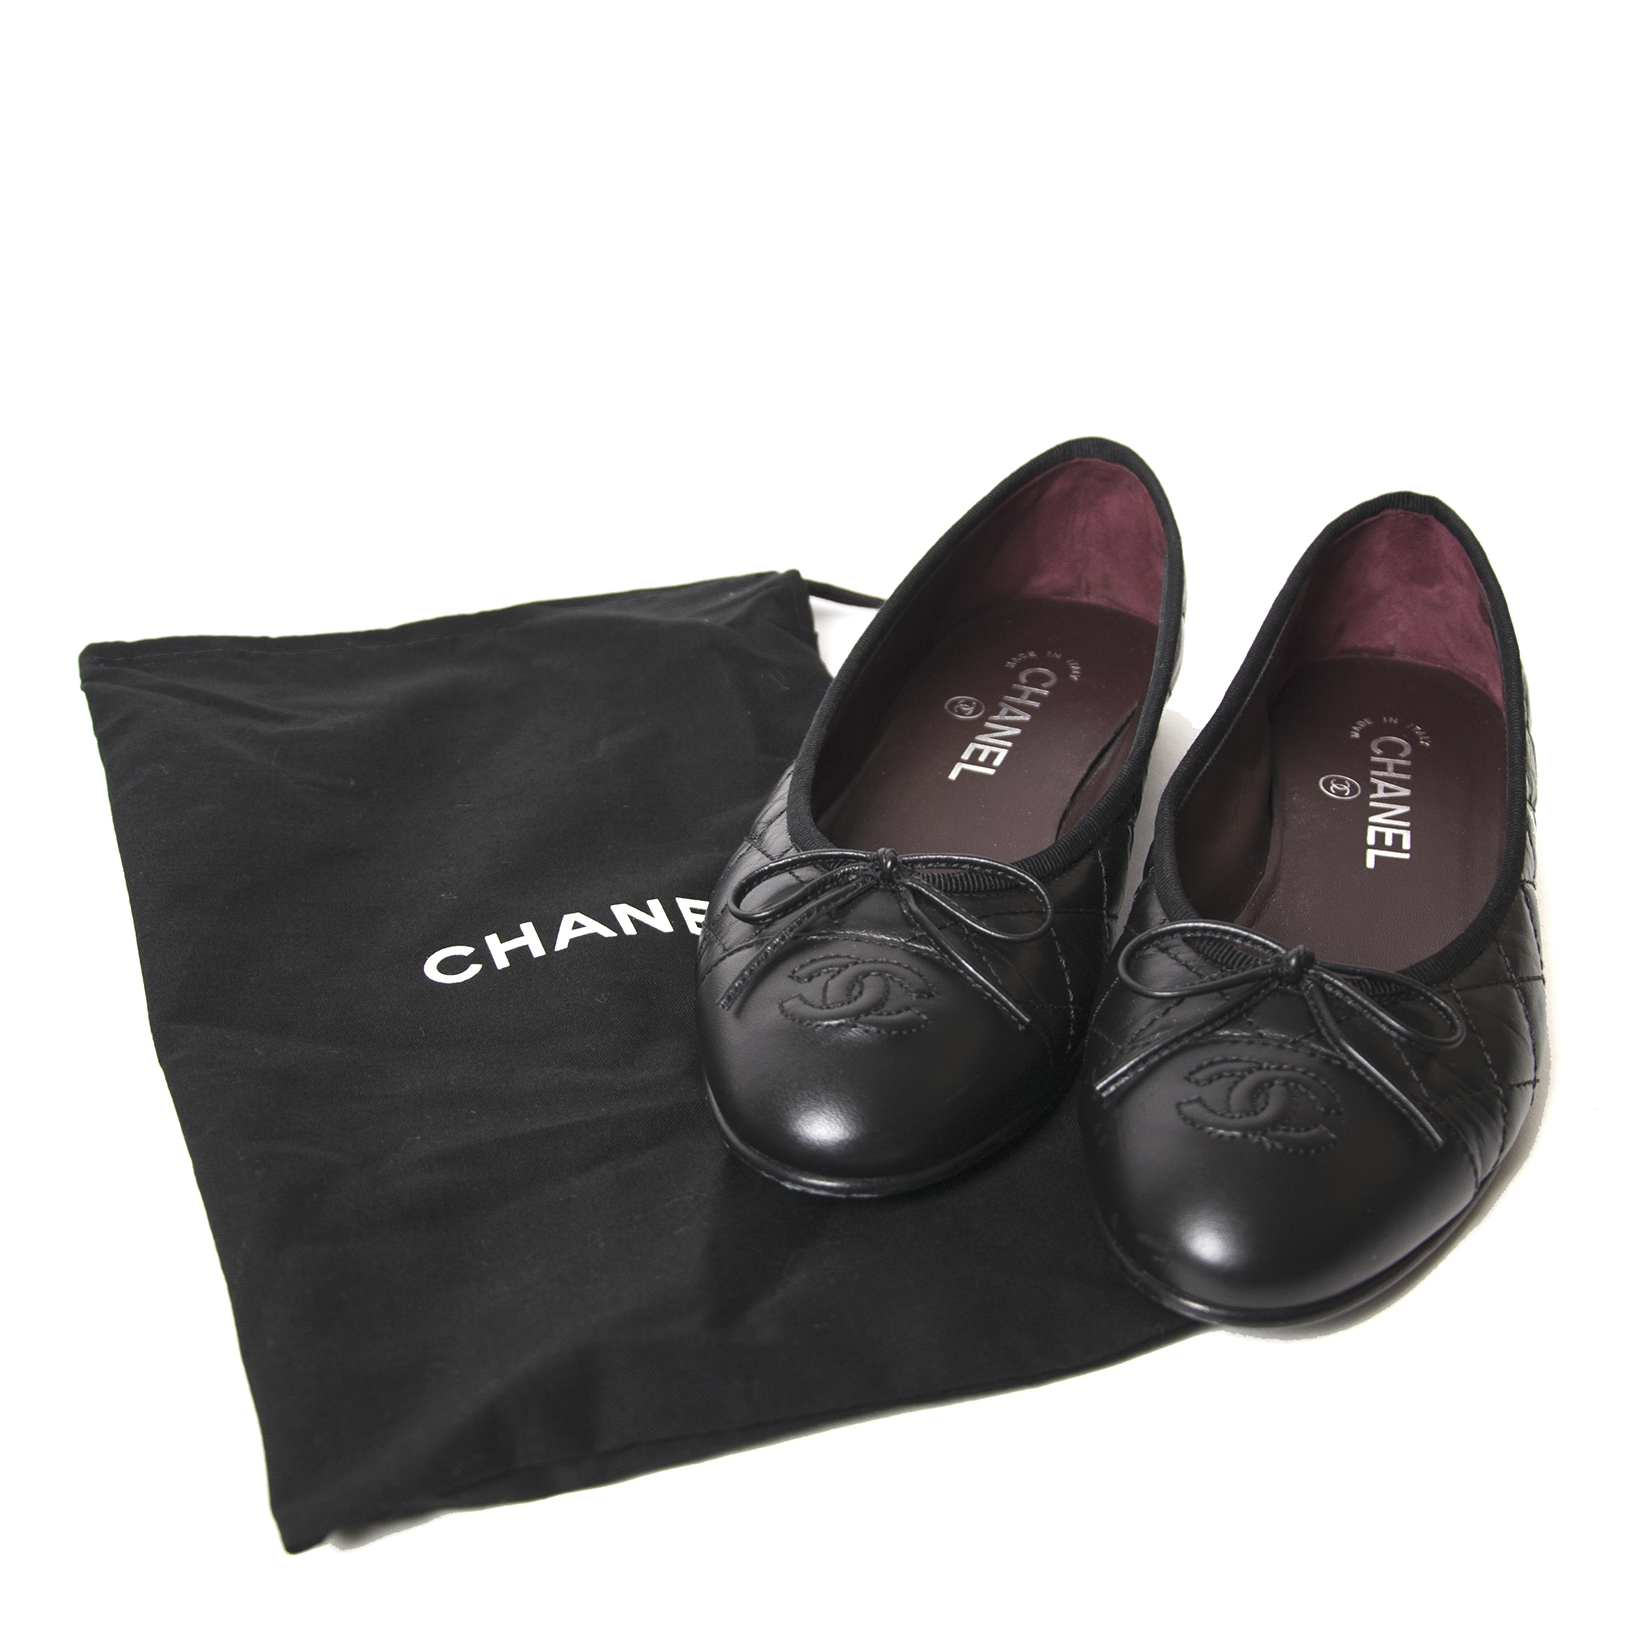 chanel black quilted leather cambon ballerinas now for sale at labellov vintage fashion webshop belgium